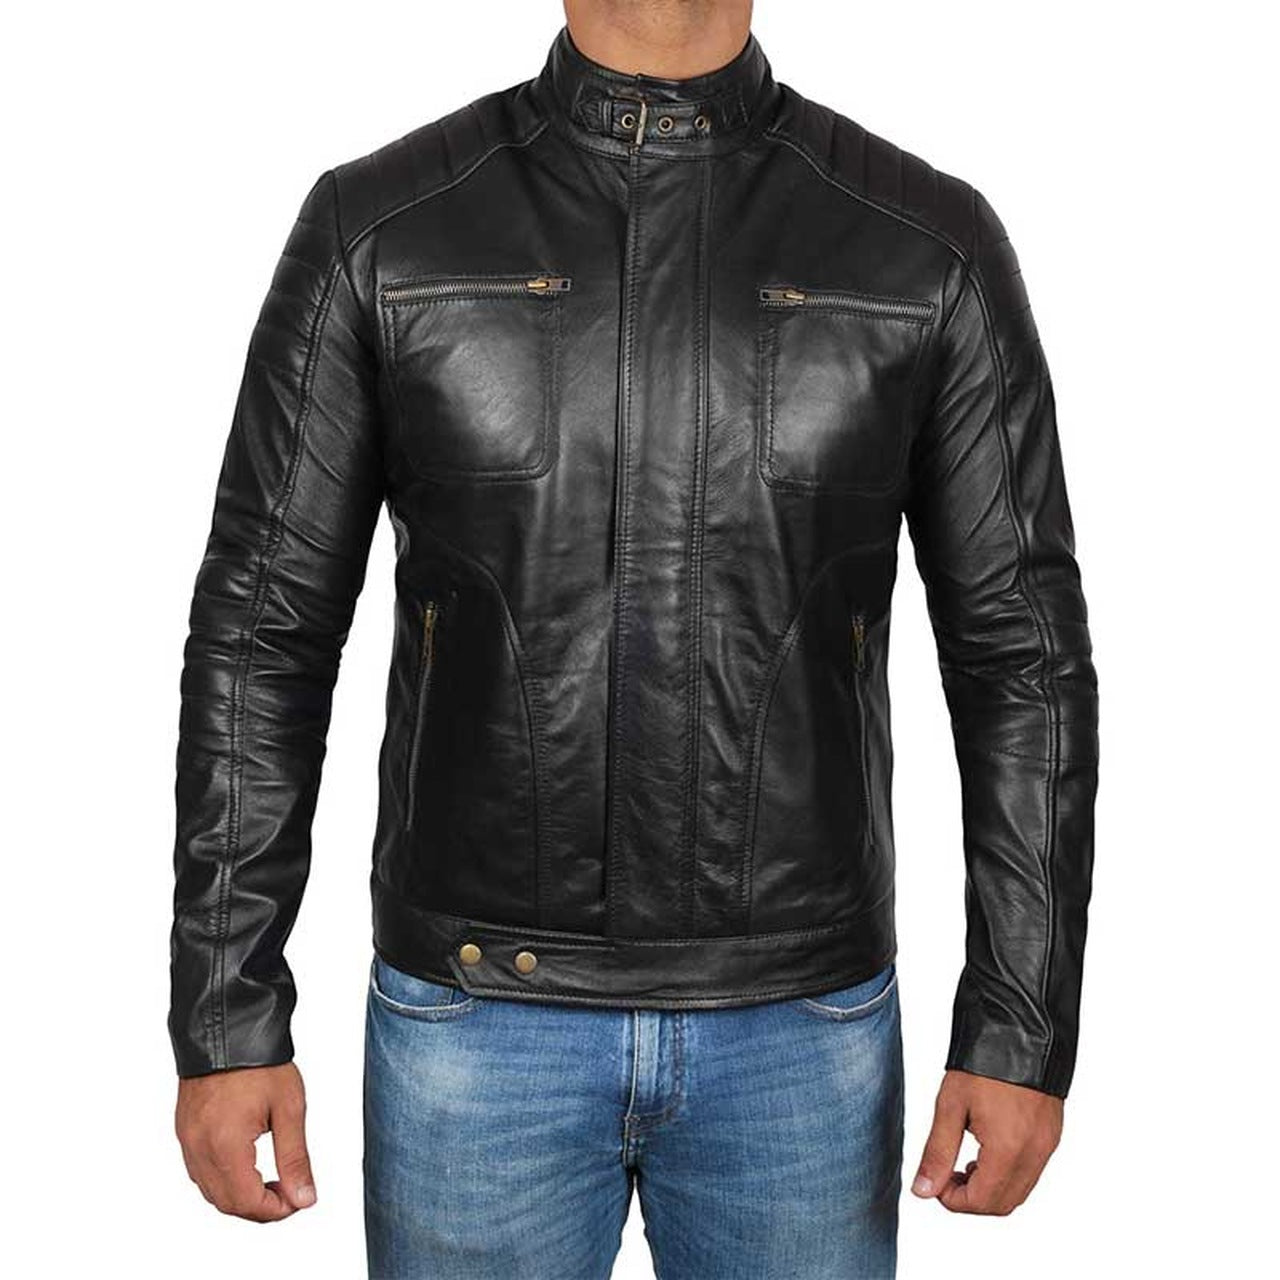 Black Genuine Leather Biker Jacket Men - Leather Jacket